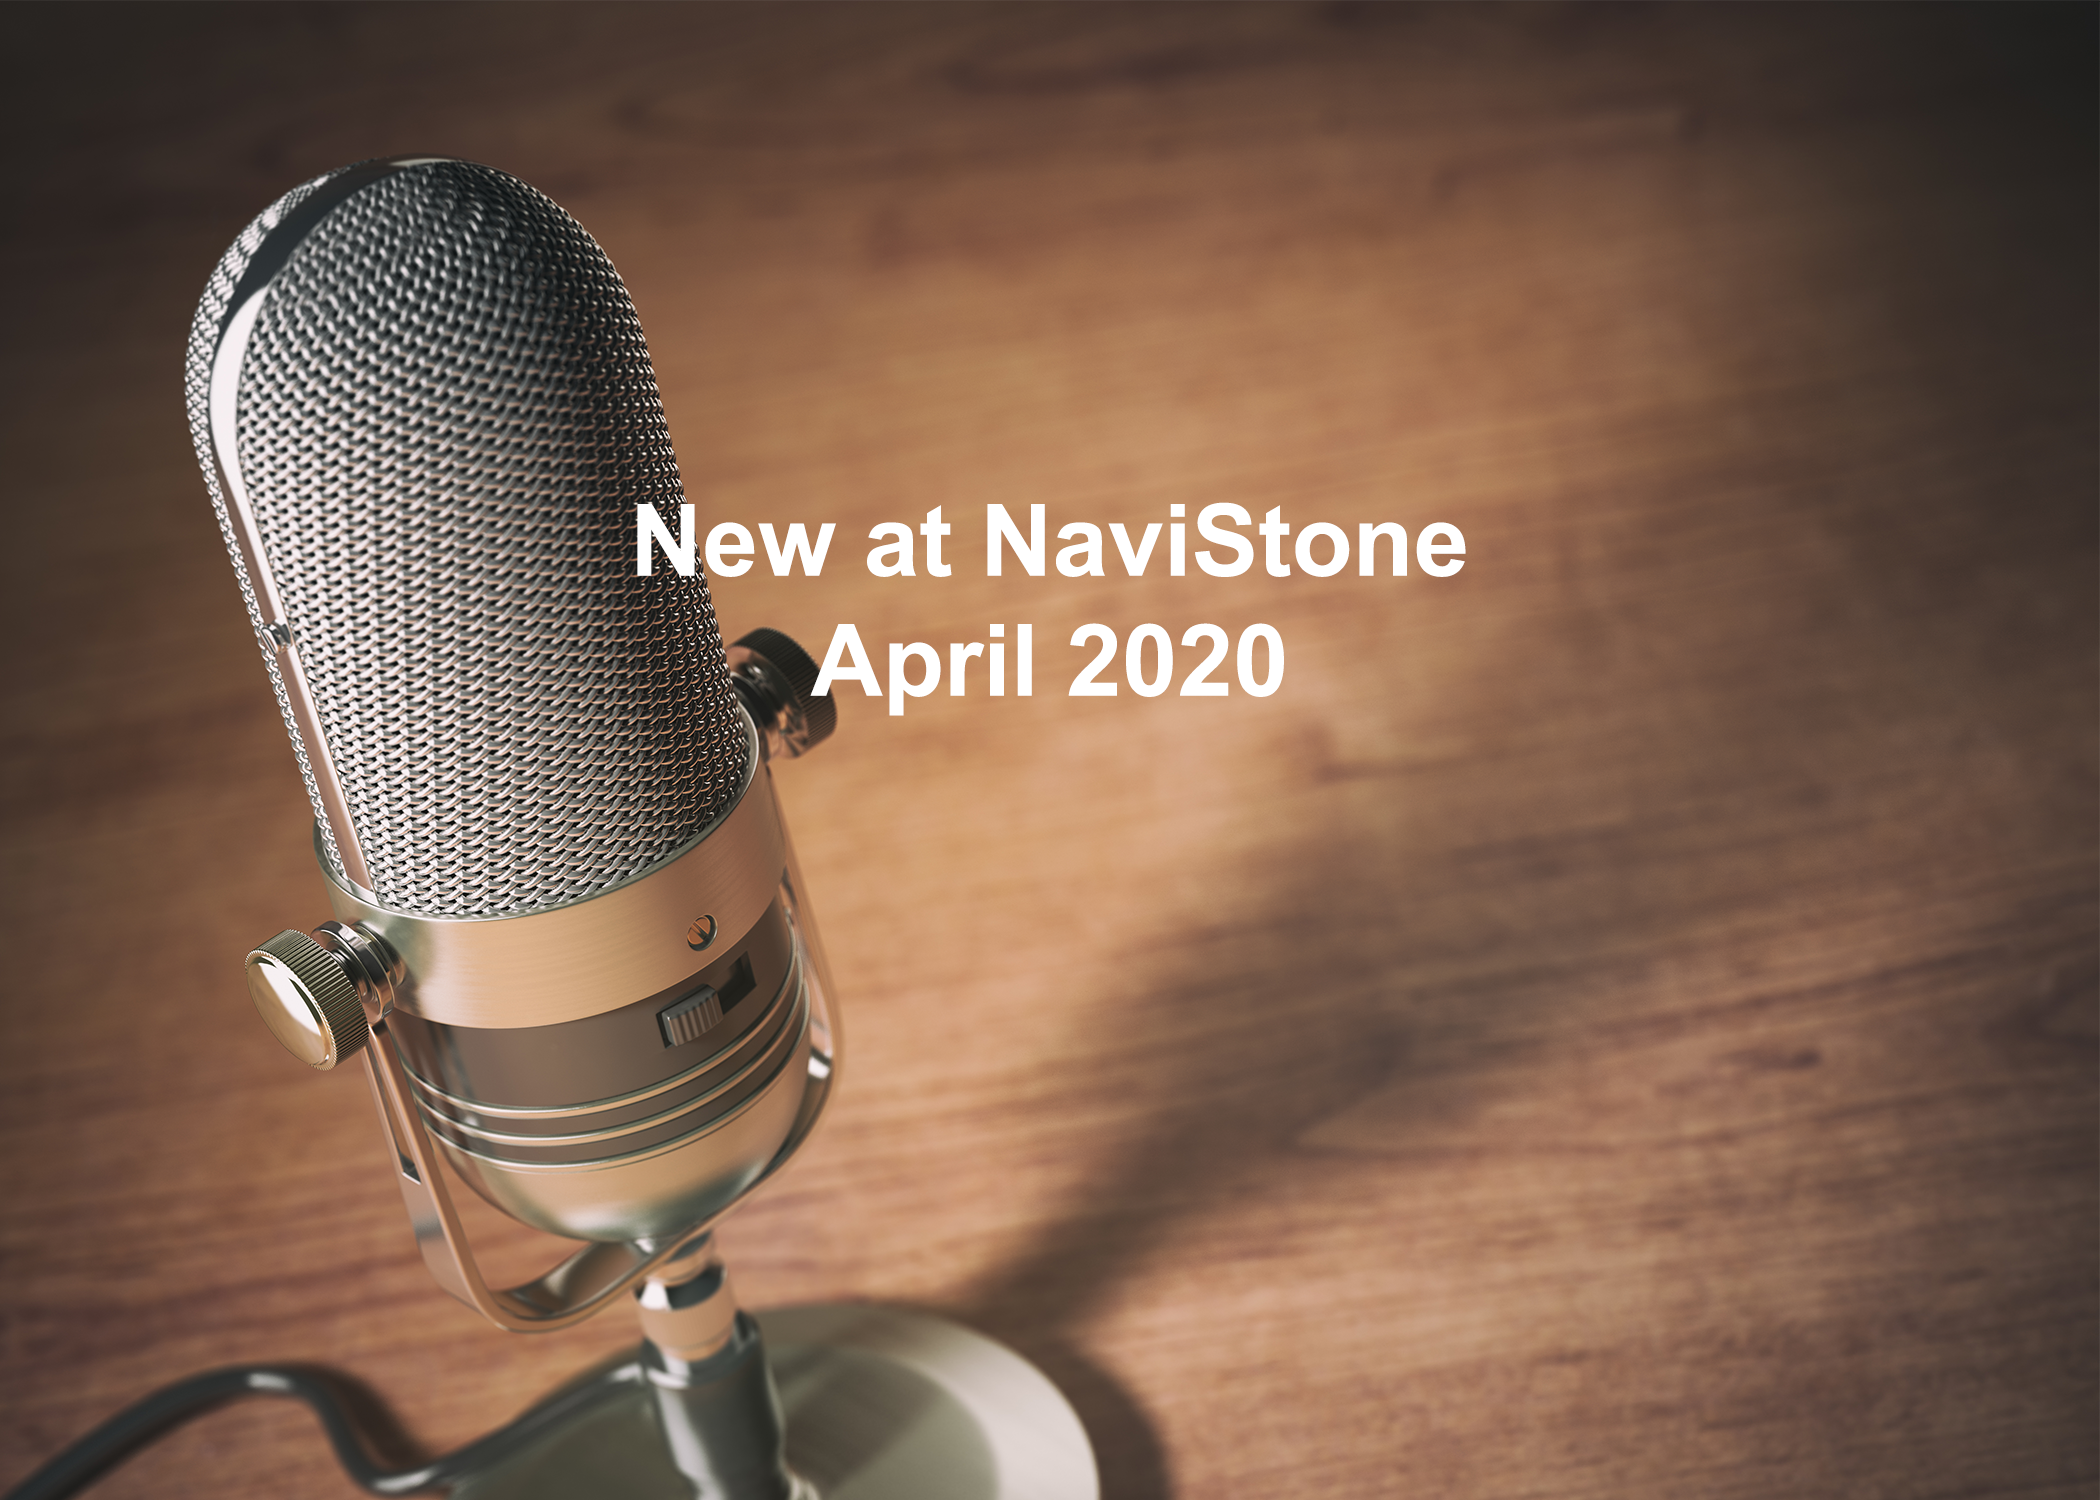 New at NaviStone April